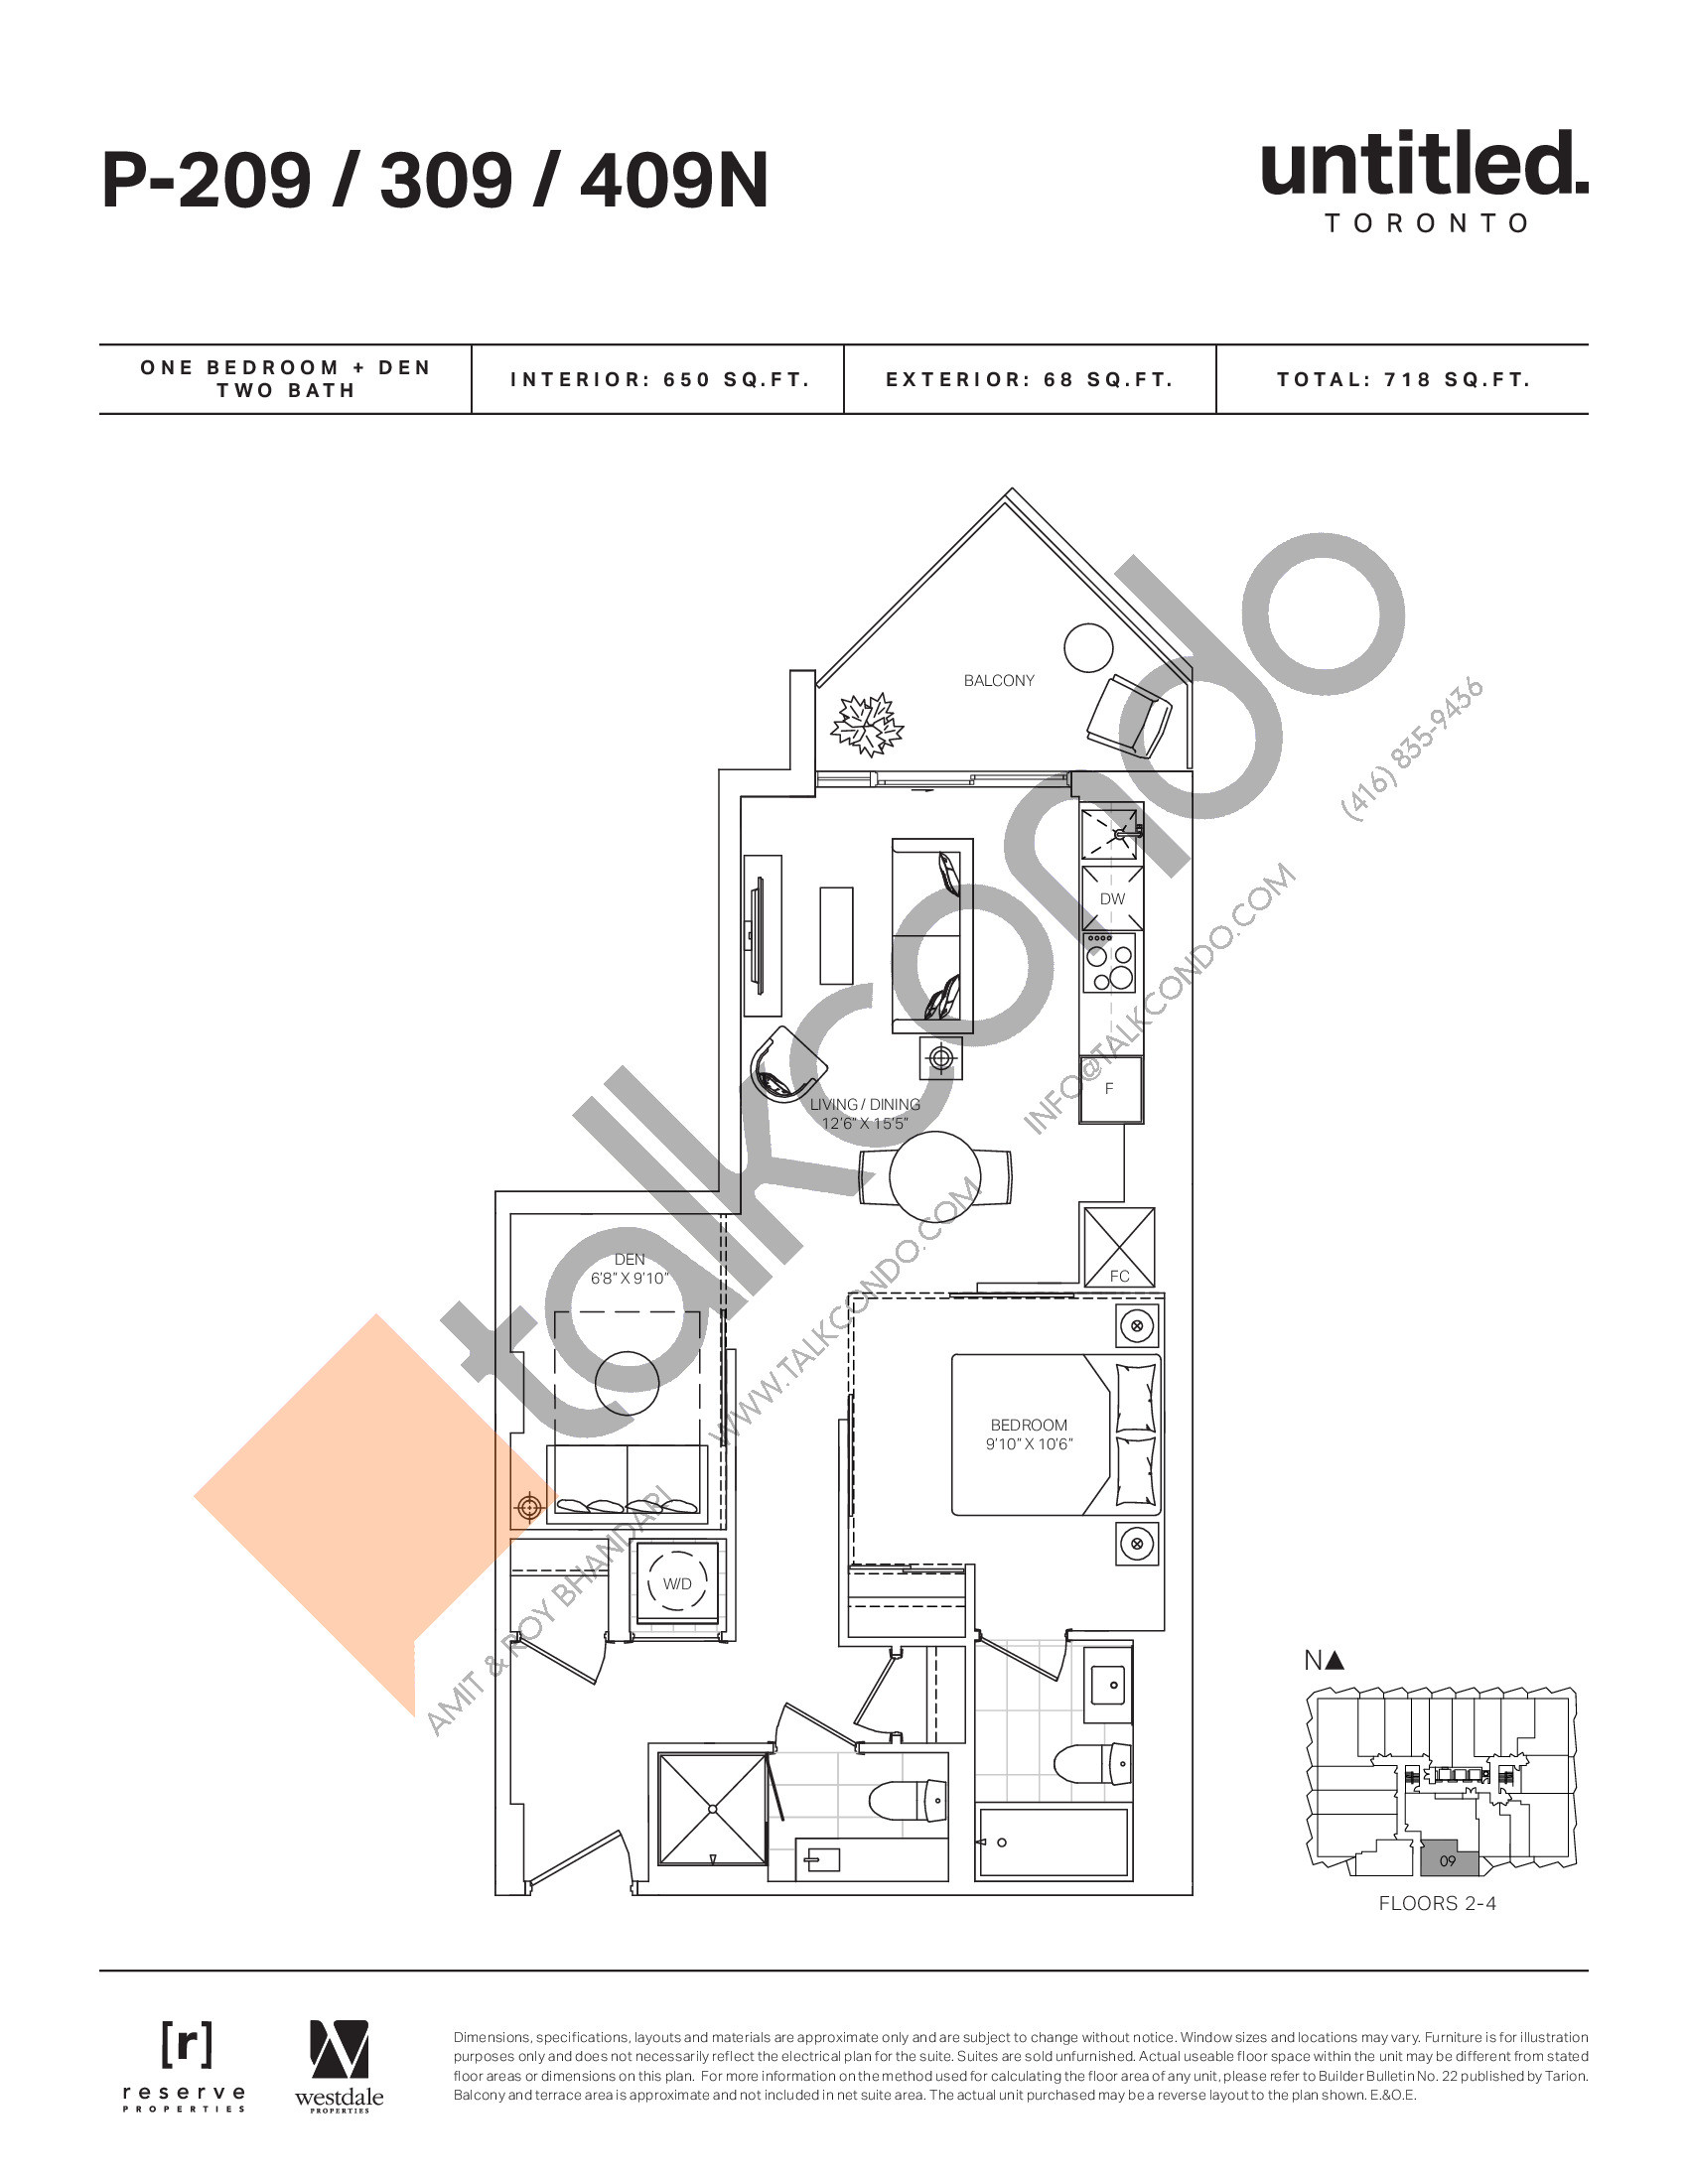 P-209/309/409N Floor Plan at Untitled North Tower Condos - 650 sq.ft